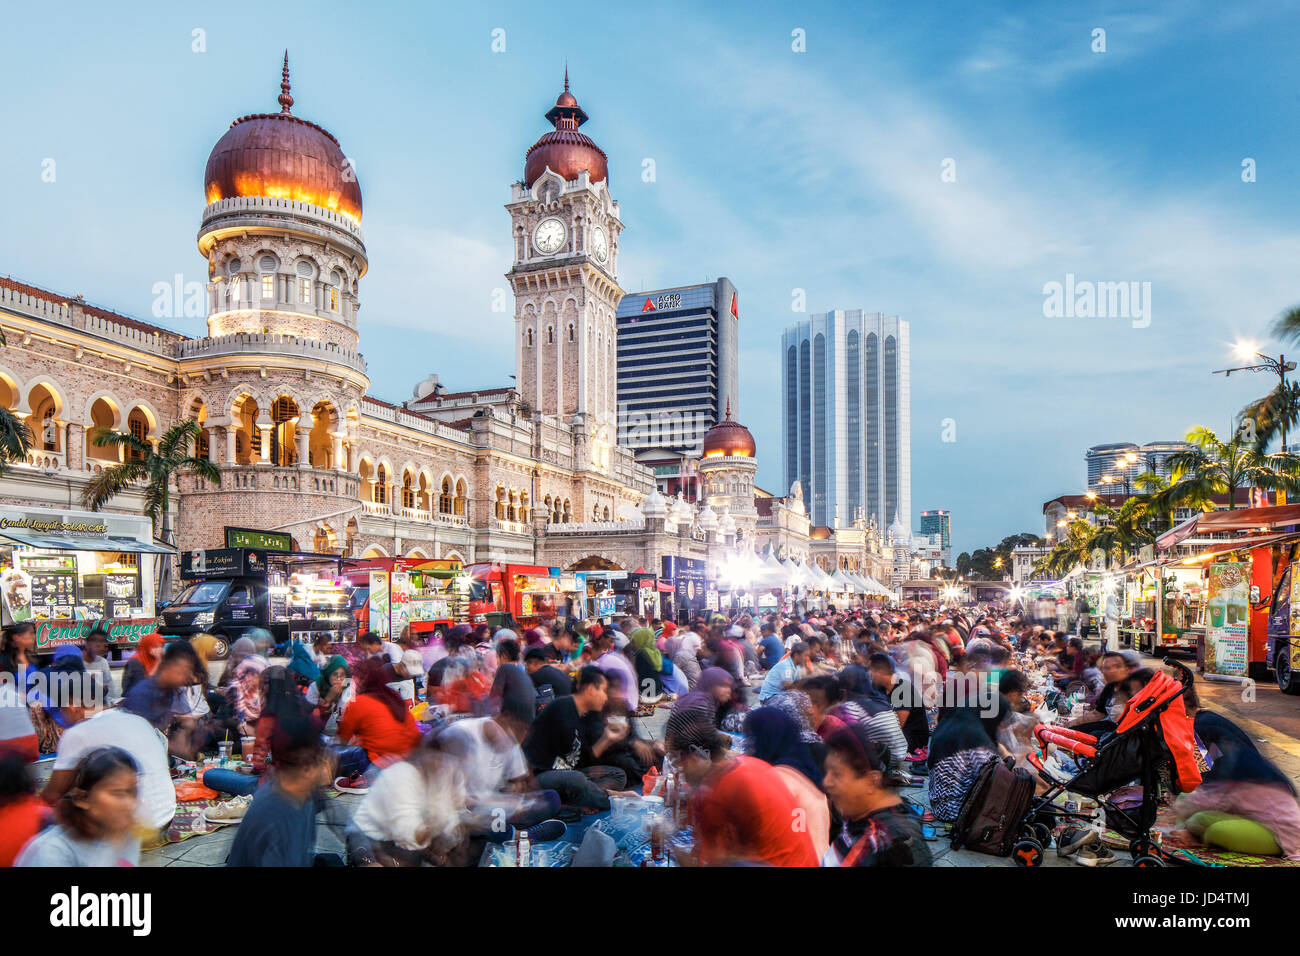 The mass breaking of fast during the month of syawal in Merdeka Square, Kuala Lumpur. - Stock Image